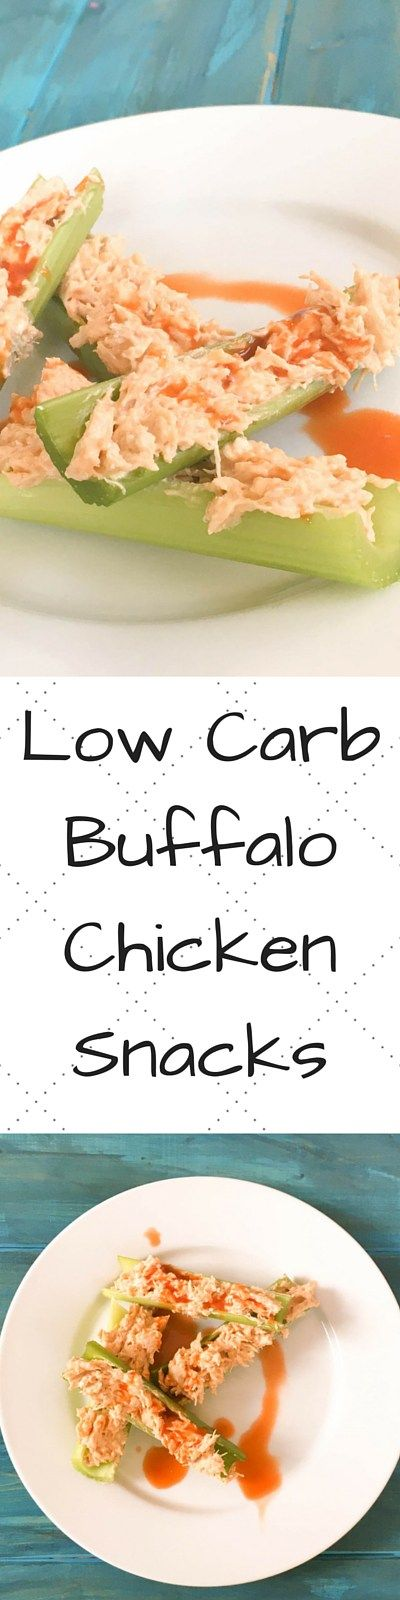 Low carb Buffalo Chicken snacks are a perfect alternative to the heavy dips and chip options. Spice up your lunchbox with these low carb spicy buffalo snack